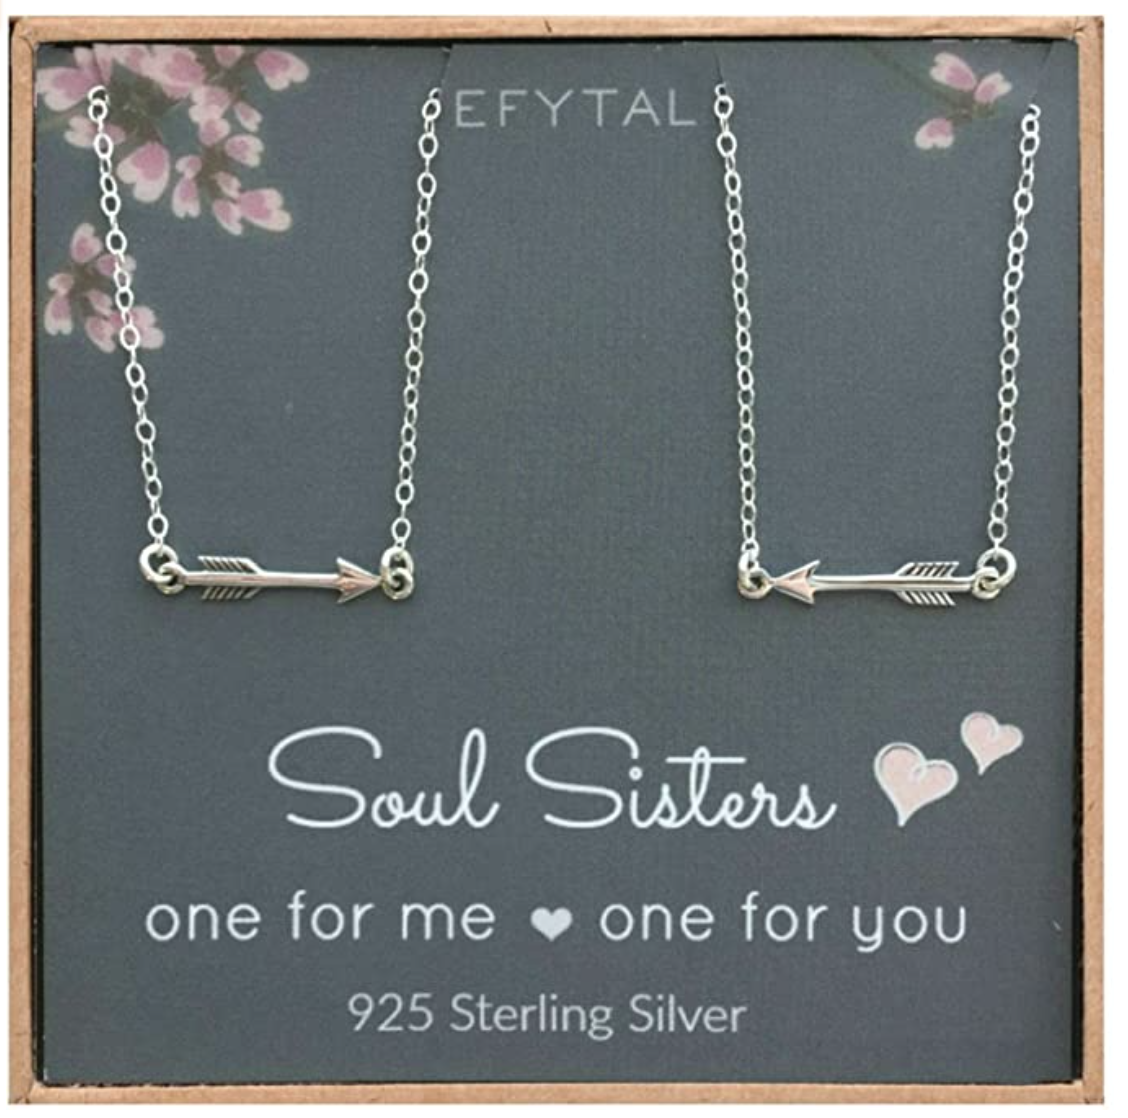 sentimental-gifts-for-best-friend-necklace